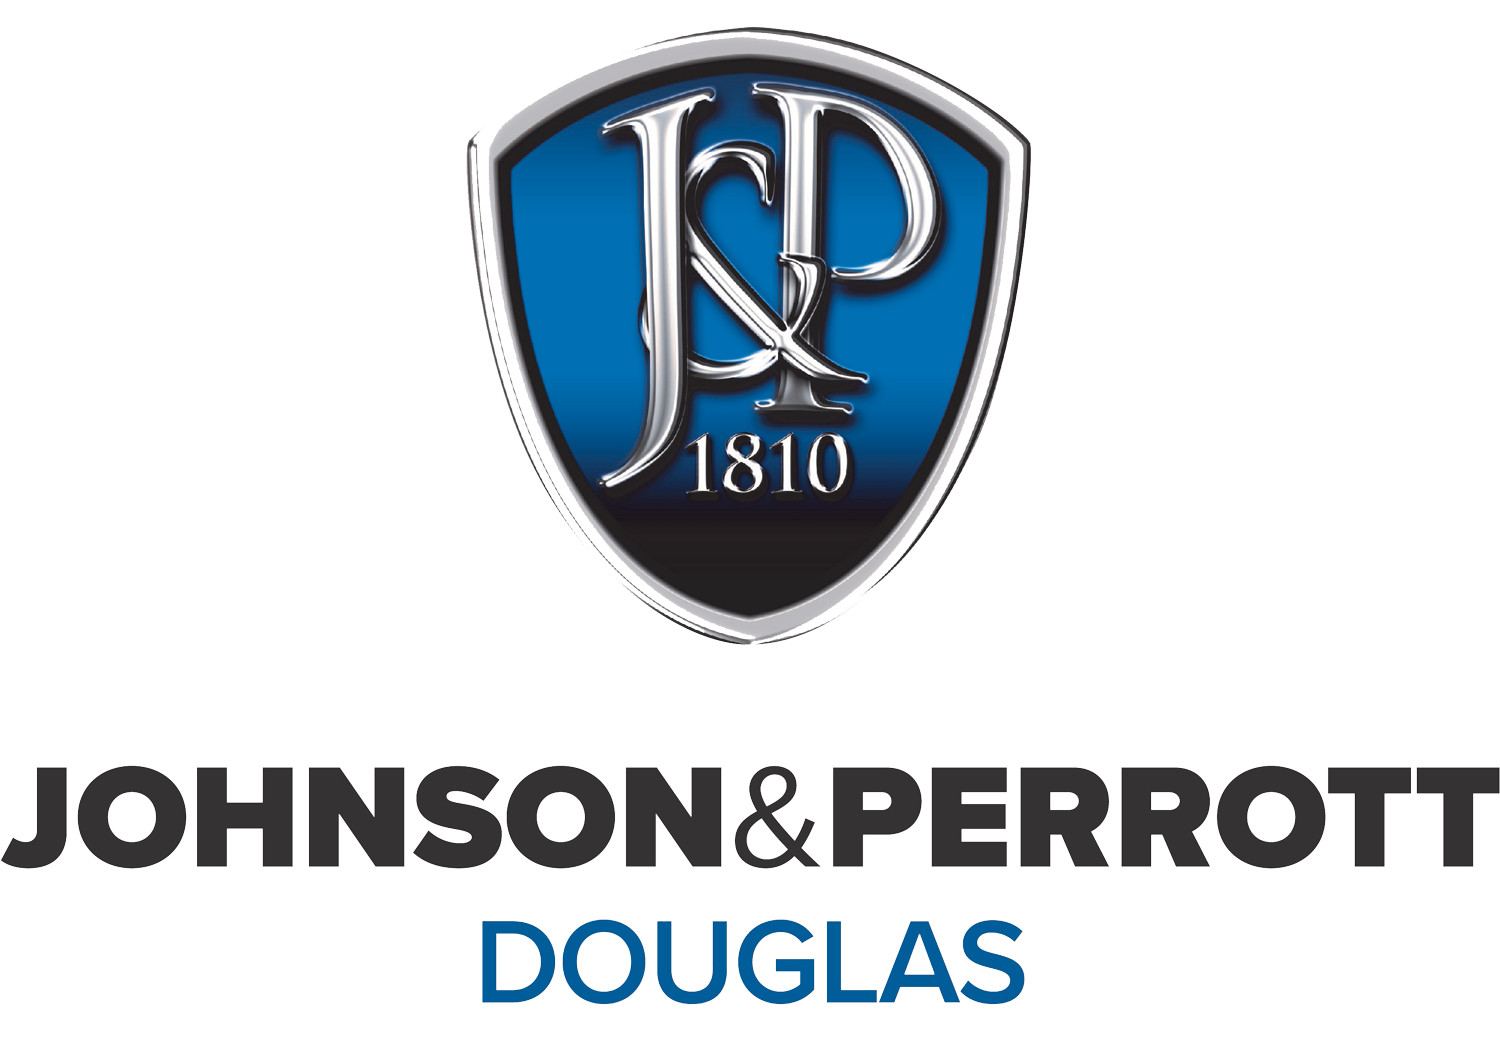 Johnson & Perrott Douglas